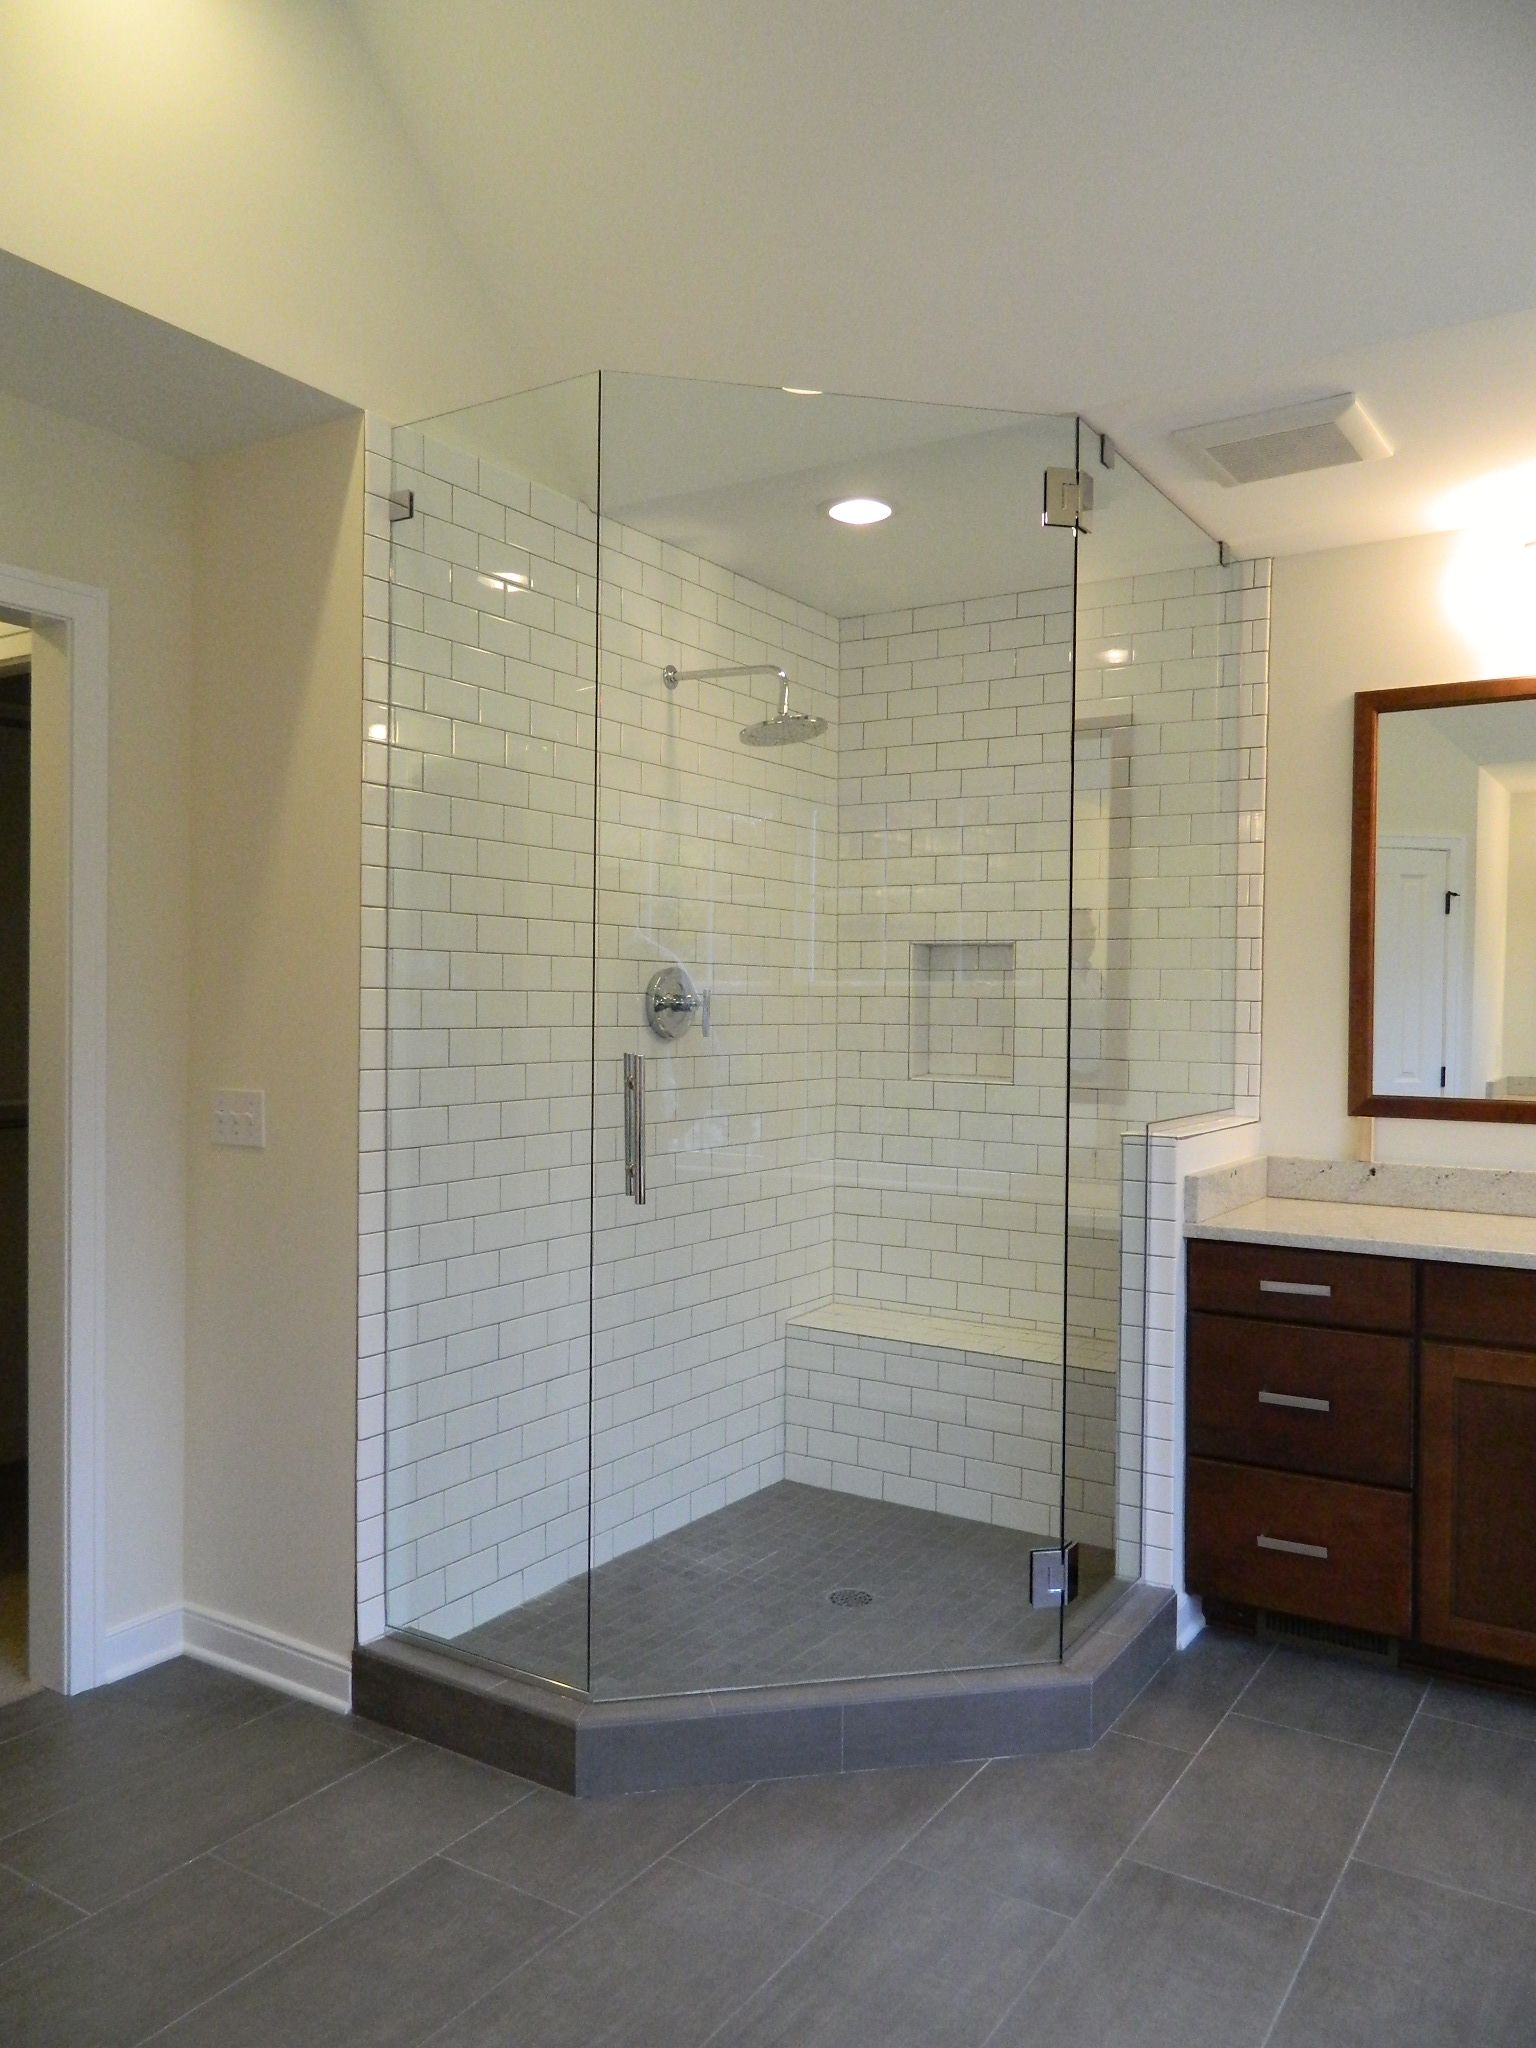 Tiled Shower Enclosures homestead | gray tile floors, subway tile showers and glass shower